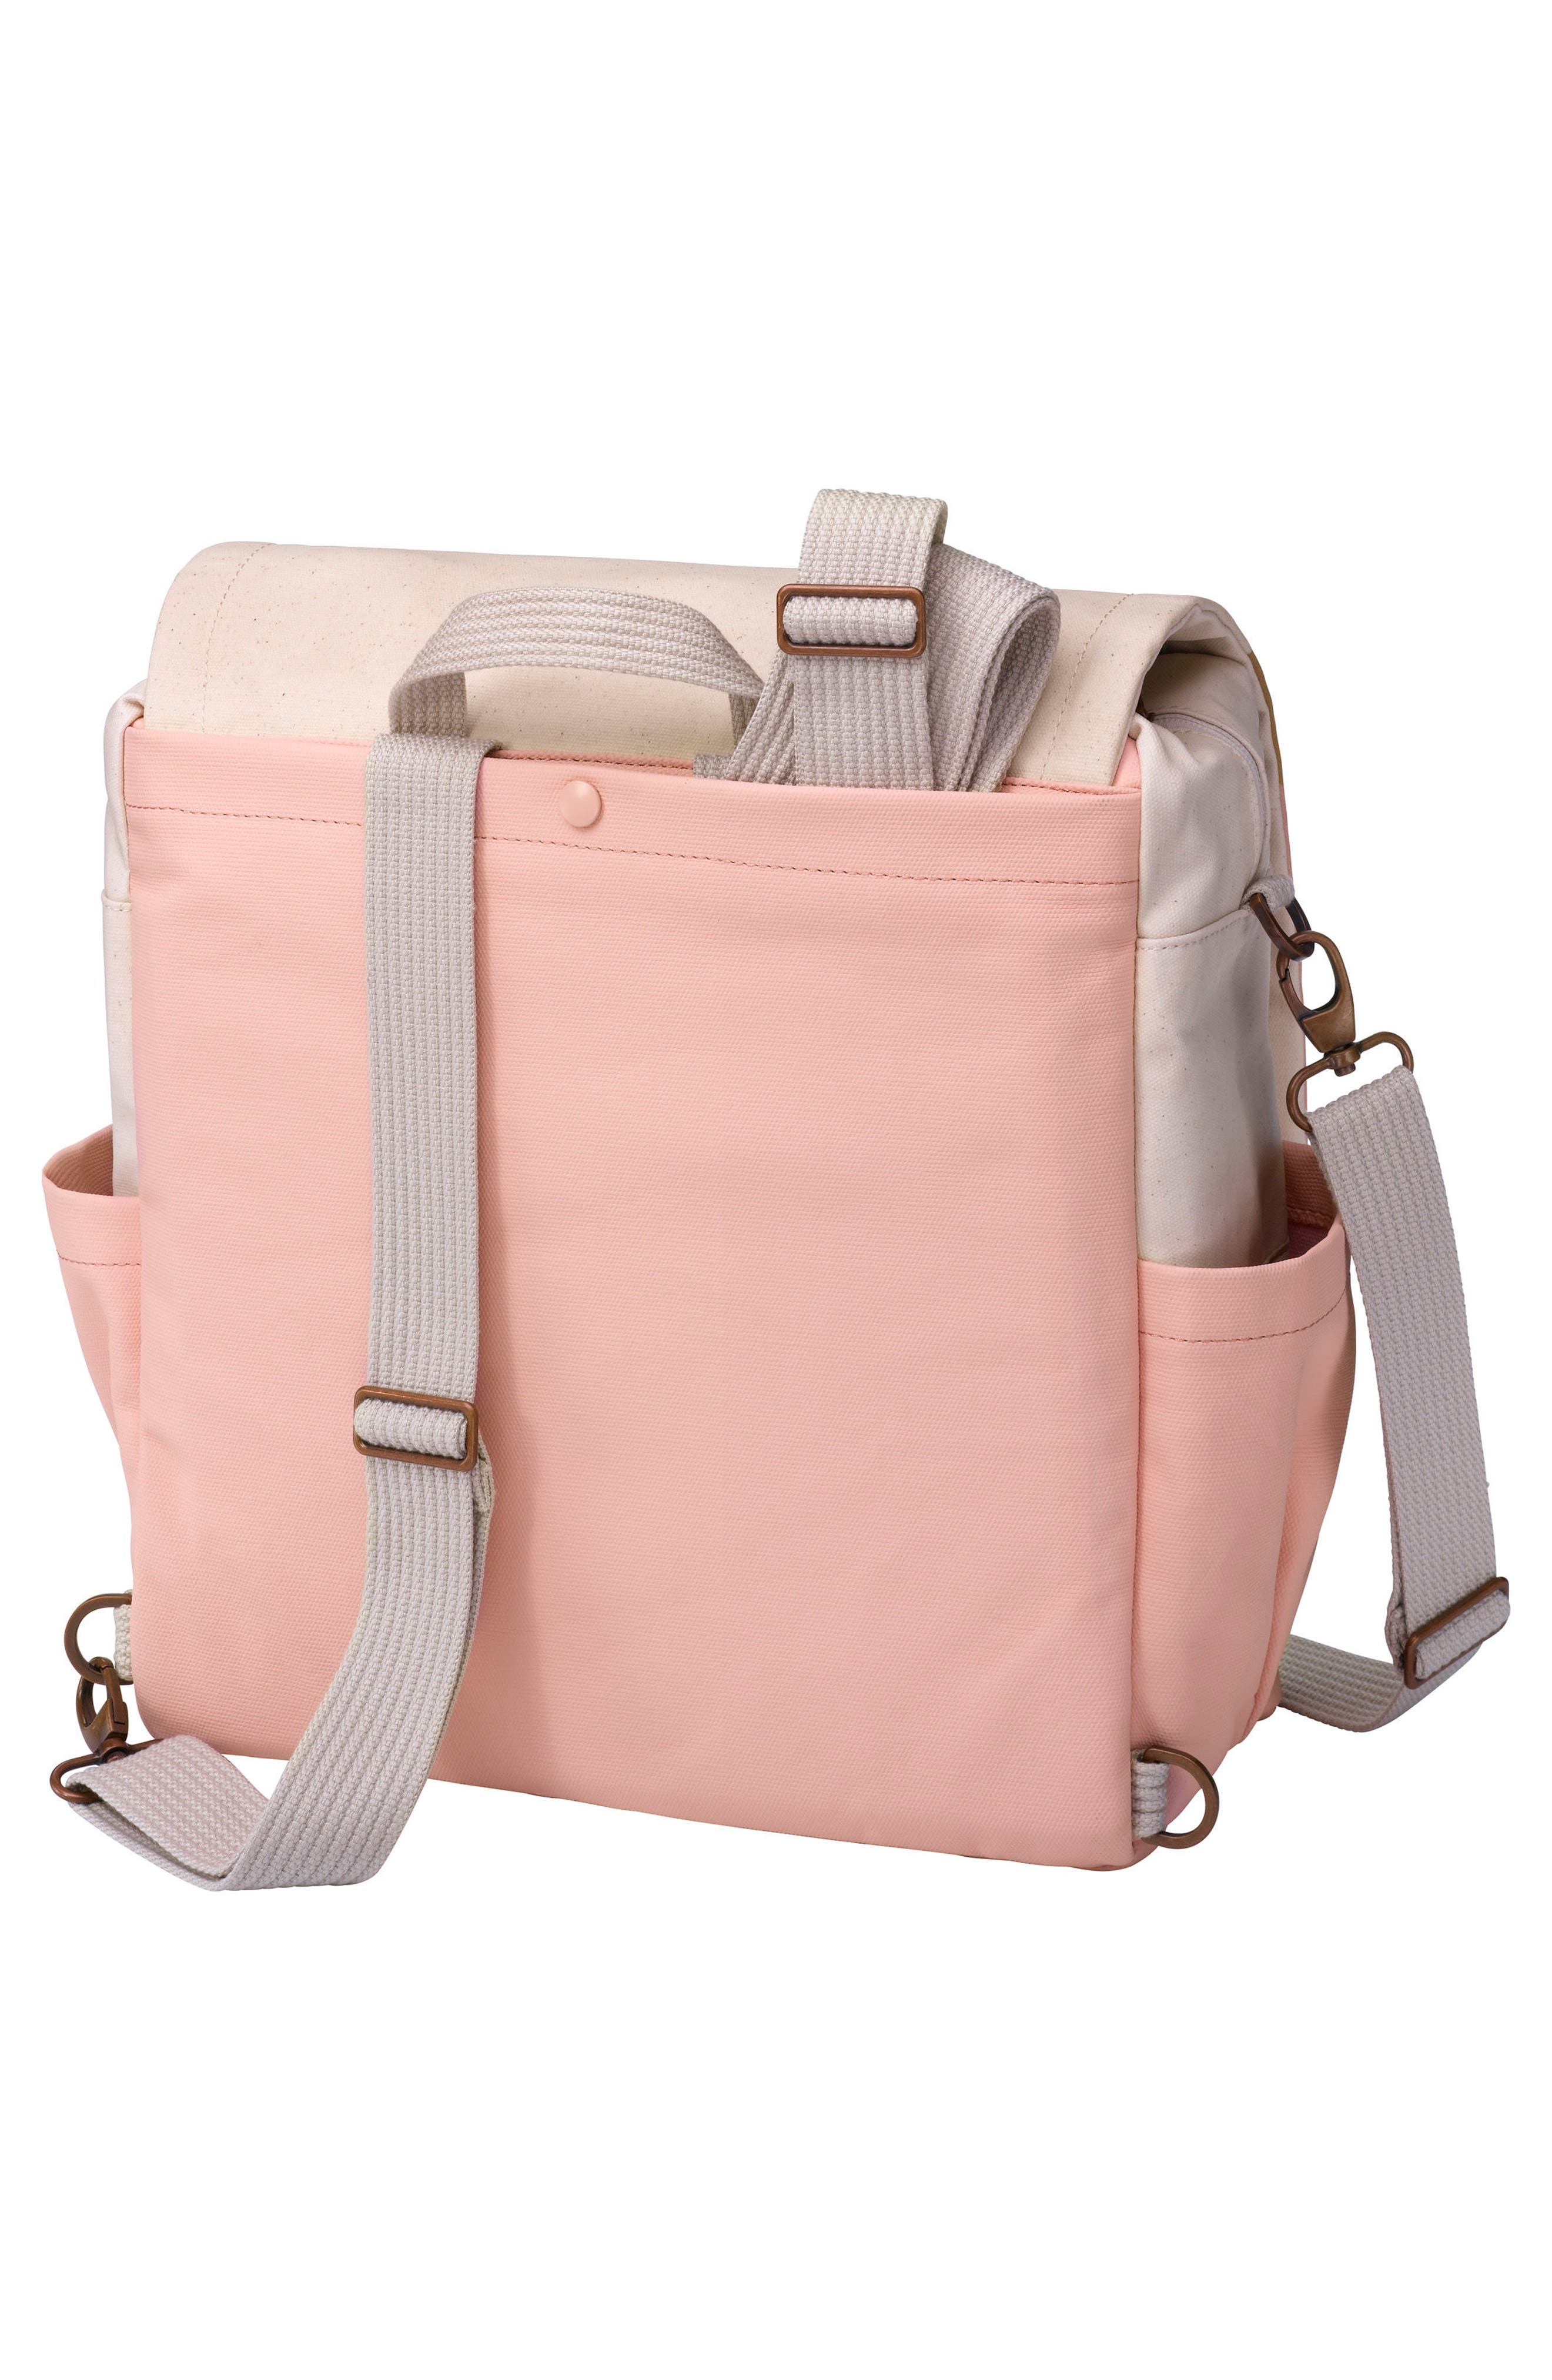 Boxy Backpack Diaper Bag,                             Alternate thumbnail 2, color,                             Birch/ Macaron